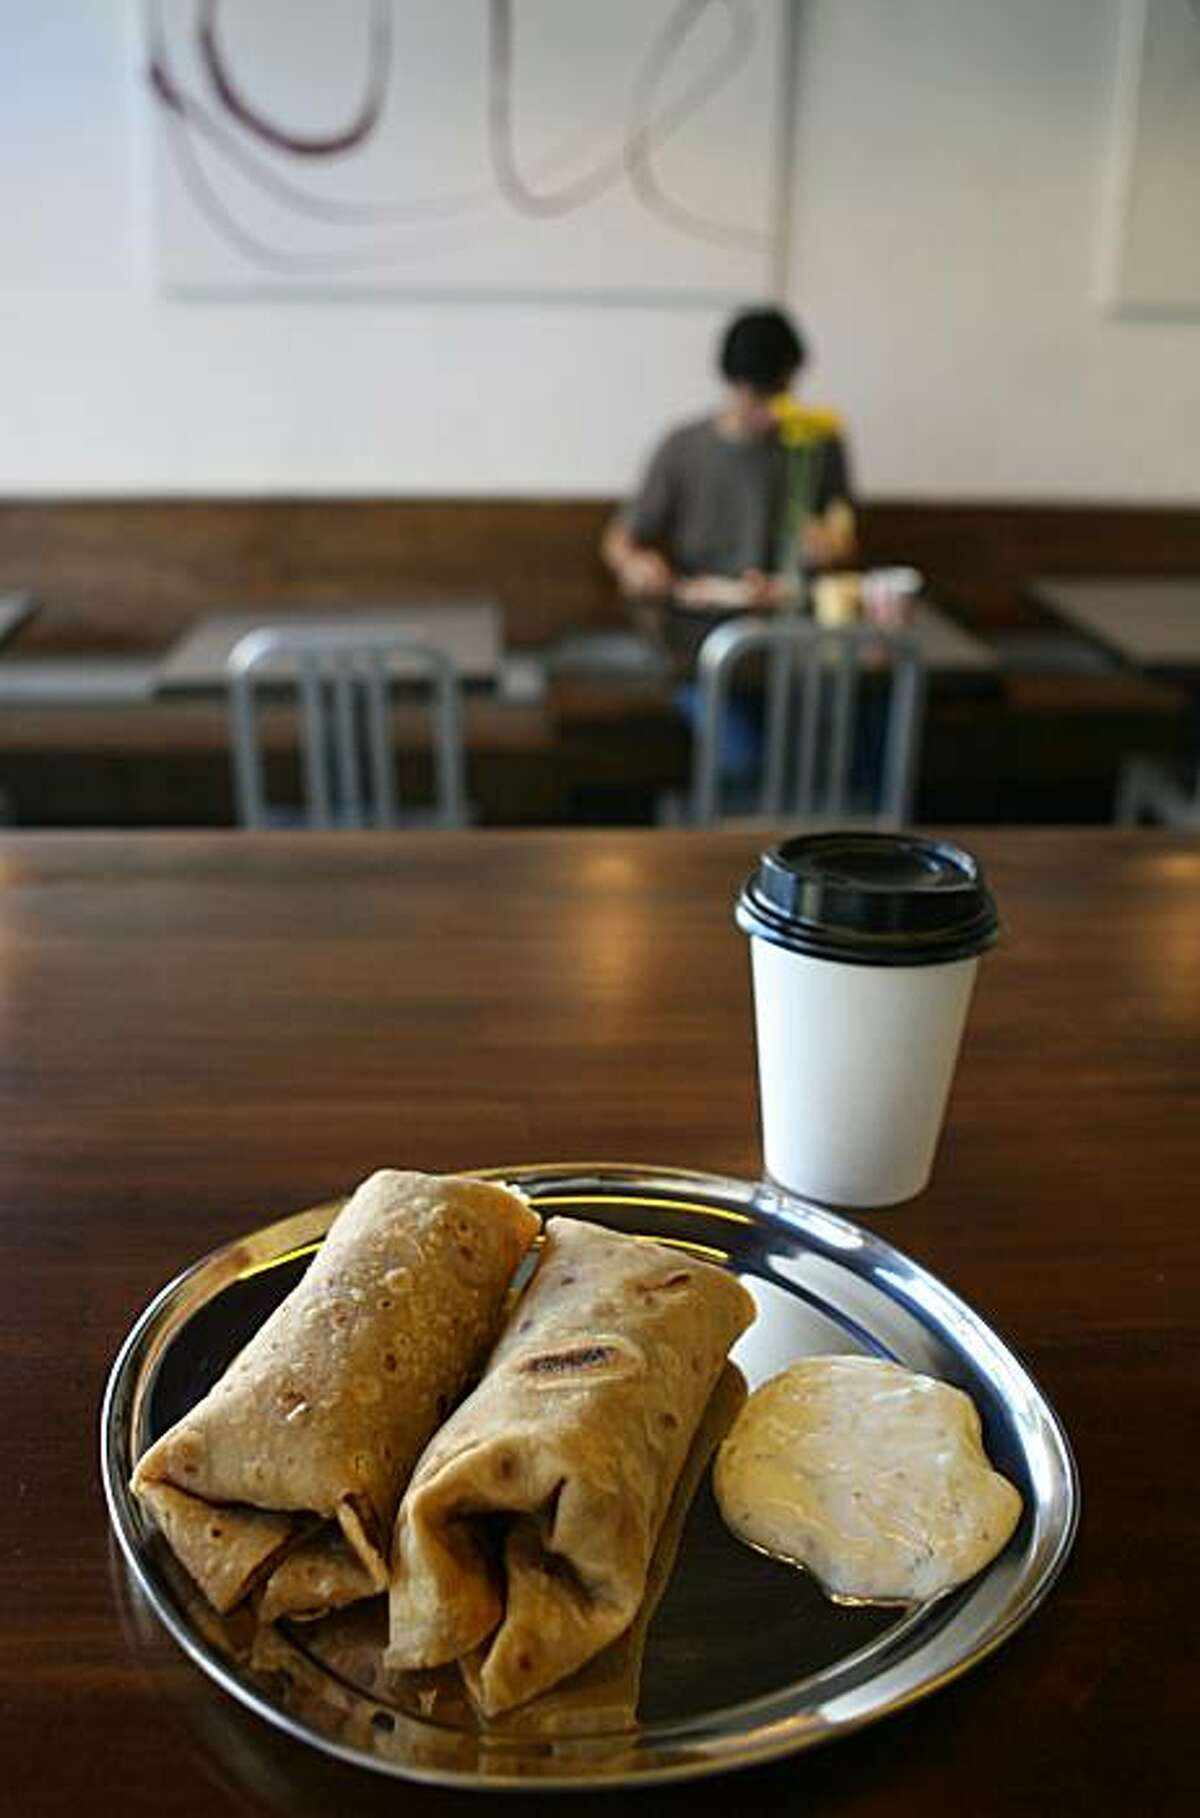 Kati roll plate and chai is photographed at Kasa Indian Eatery in San Francisco, Calif. on Friday, November 14, 2008